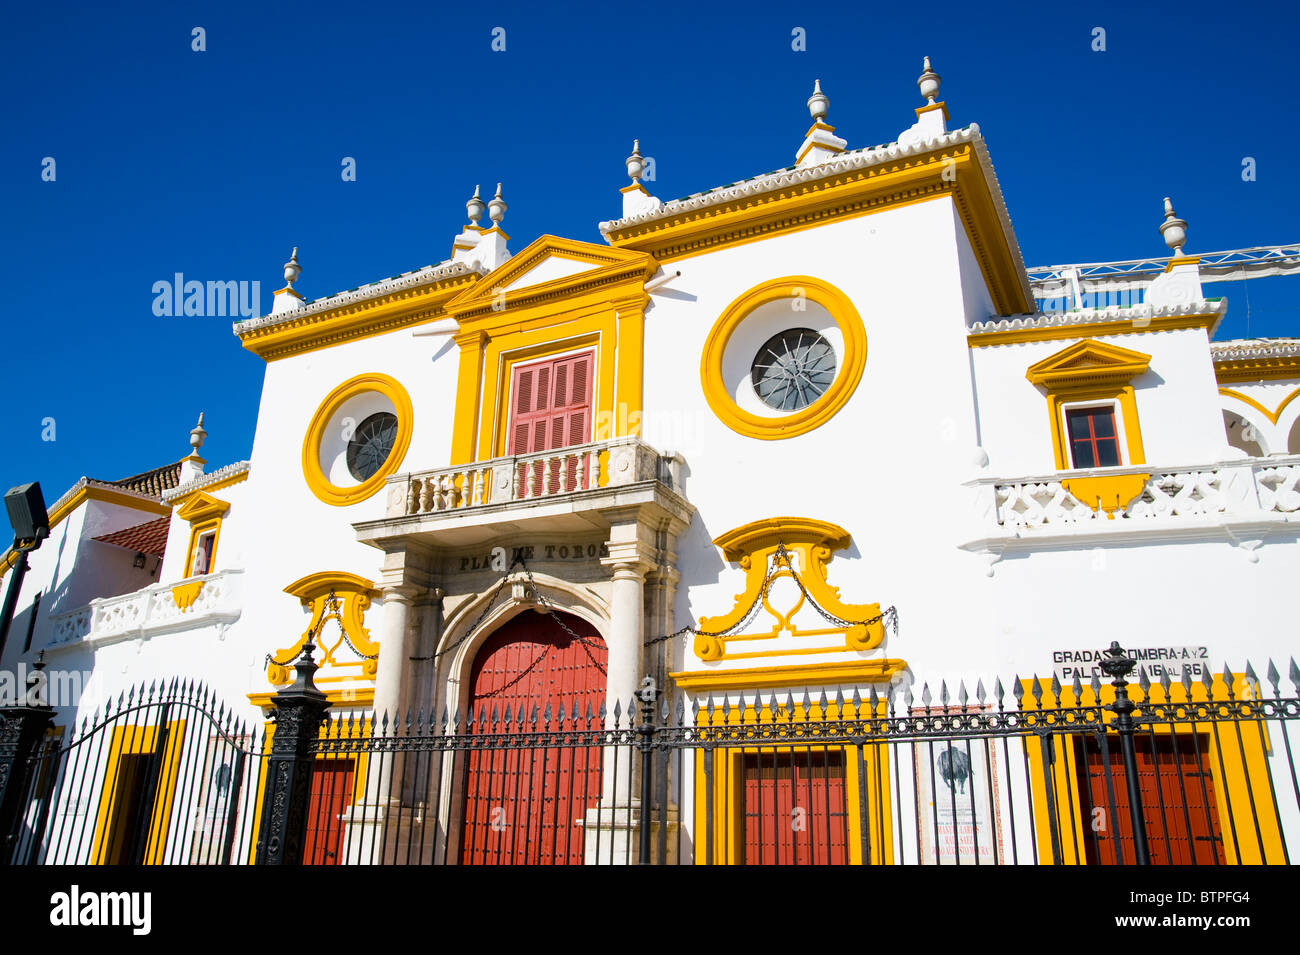 Plaza de Toros, Bullfighting ring, Seville, Andalucia, Spain Stock Photo